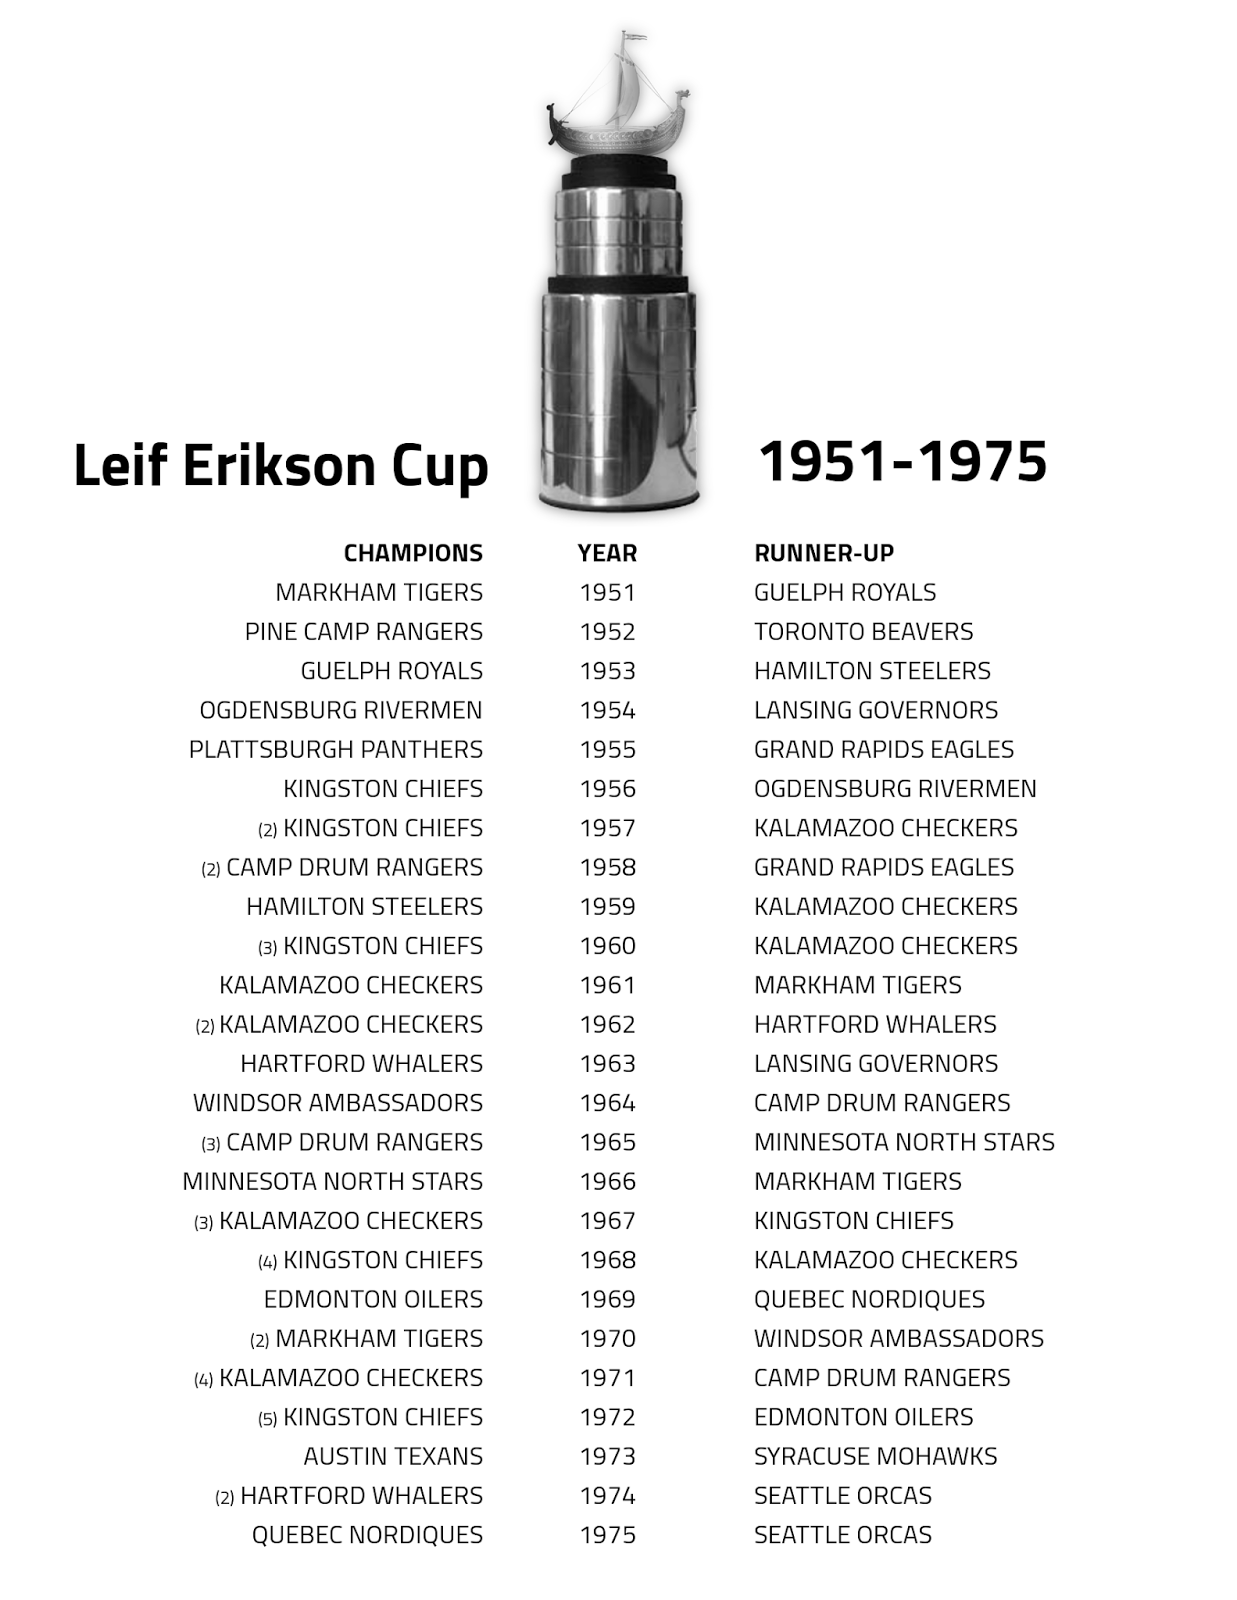 cuphistory.png